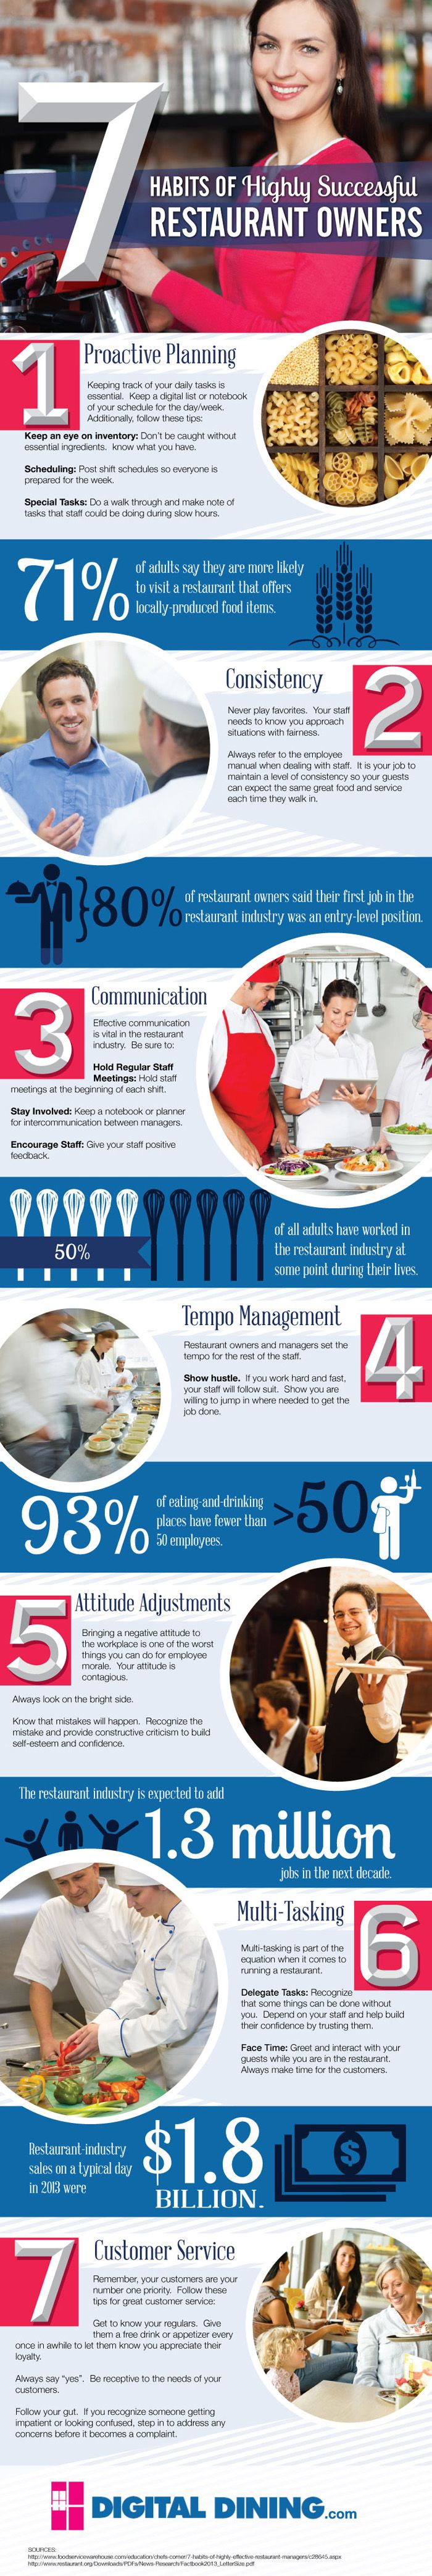 7 Habits of Highly Successful Restaurant Owners (Infographic)